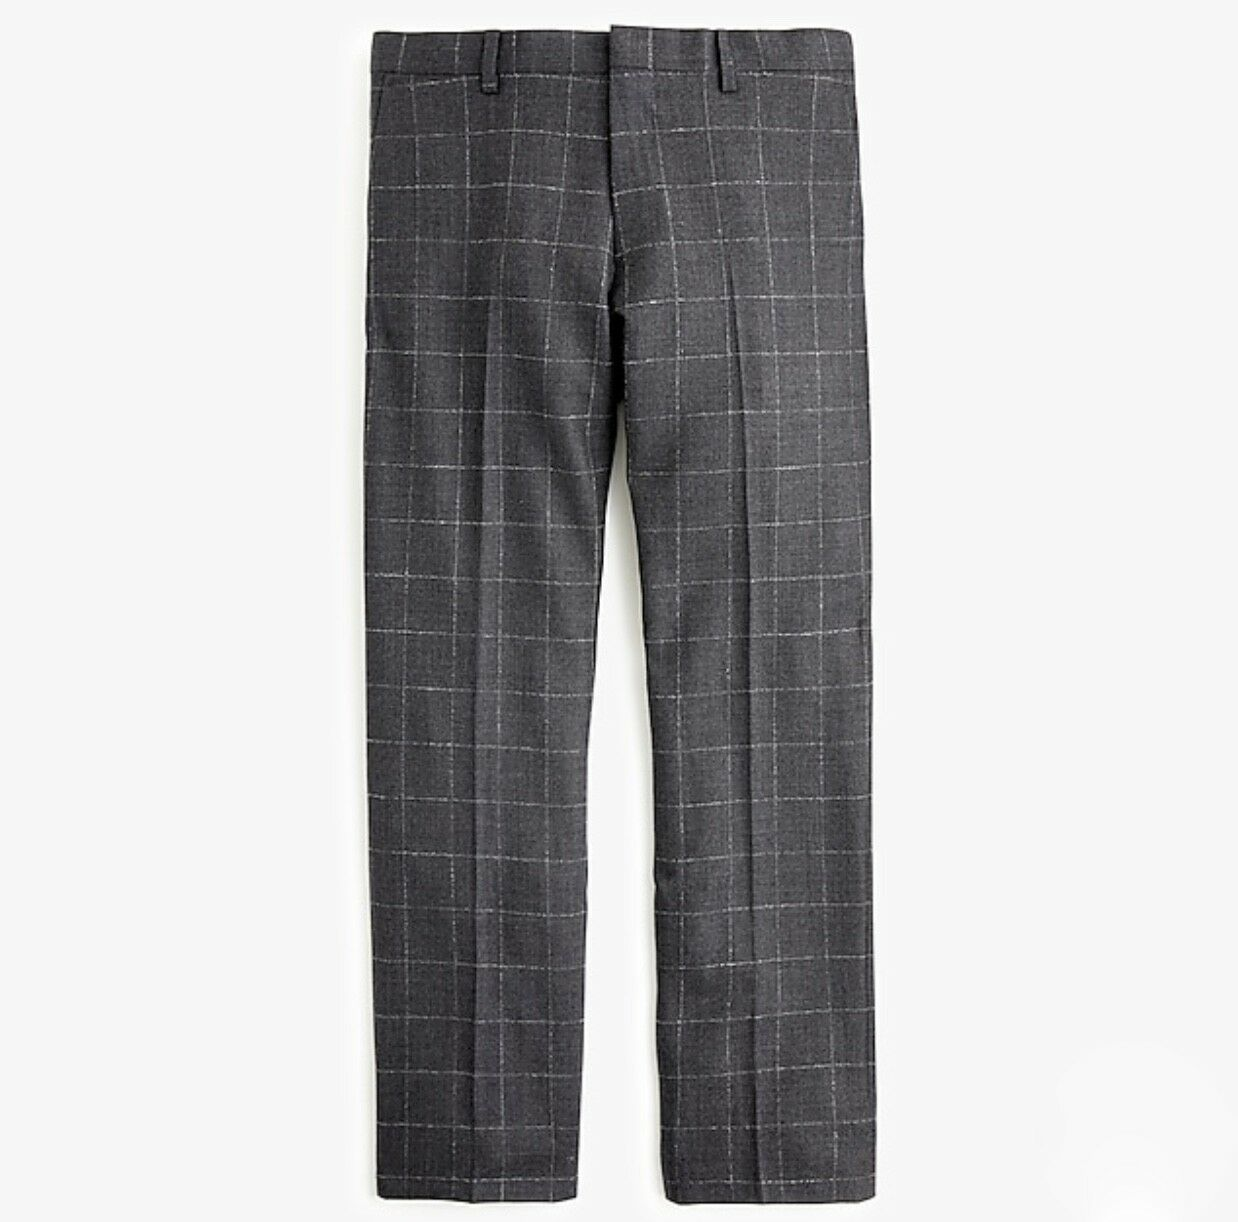 J.CREW LUDLOW SLIM-FIT PANT IN WINDOWPANE WOOL SIZE 32 34 GREY J8480